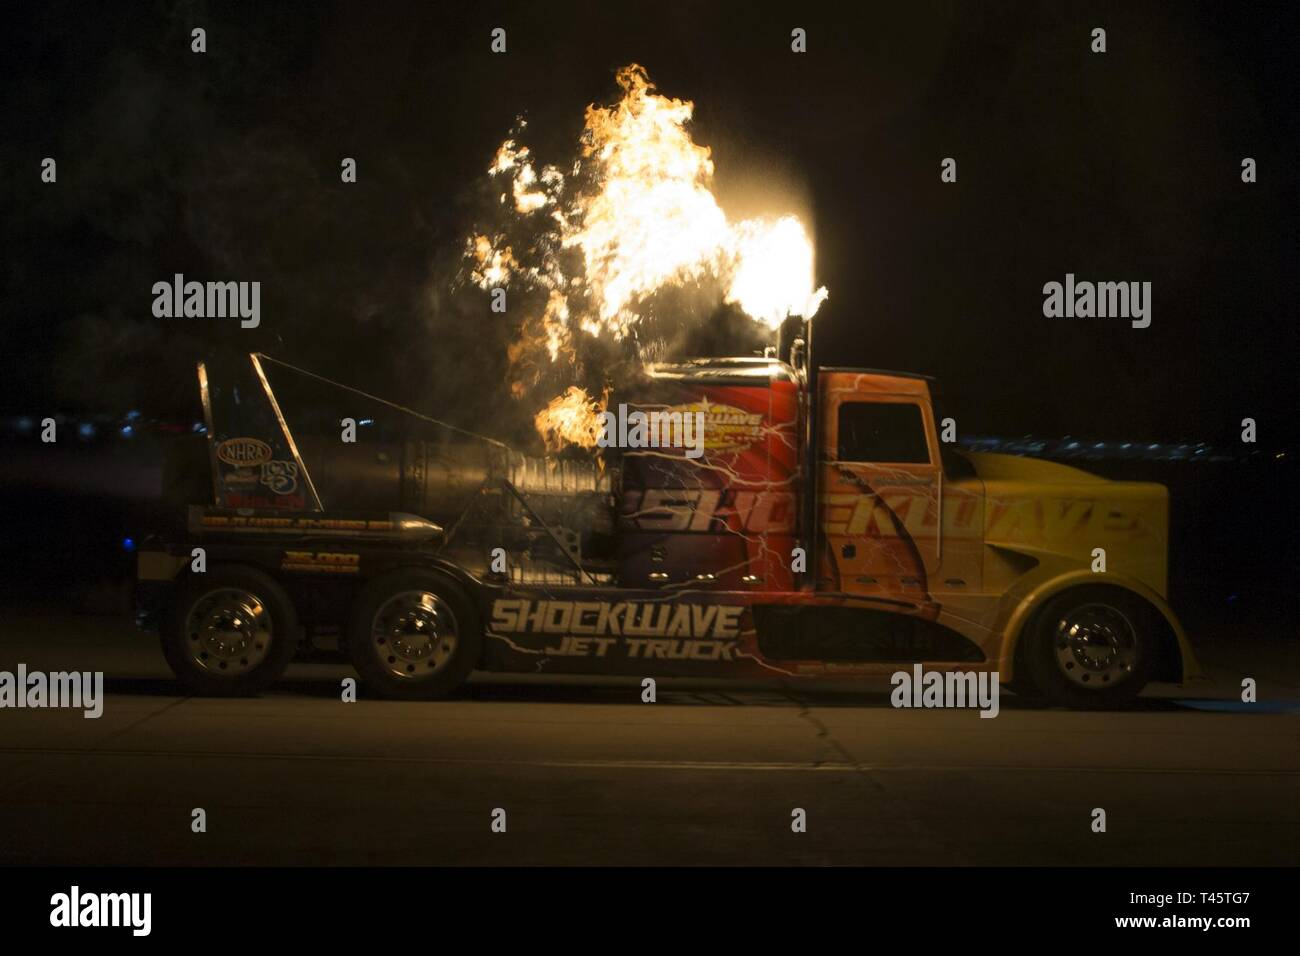 Powered Trucks Stock Photos & Powered Trucks Stock Images - Alamy